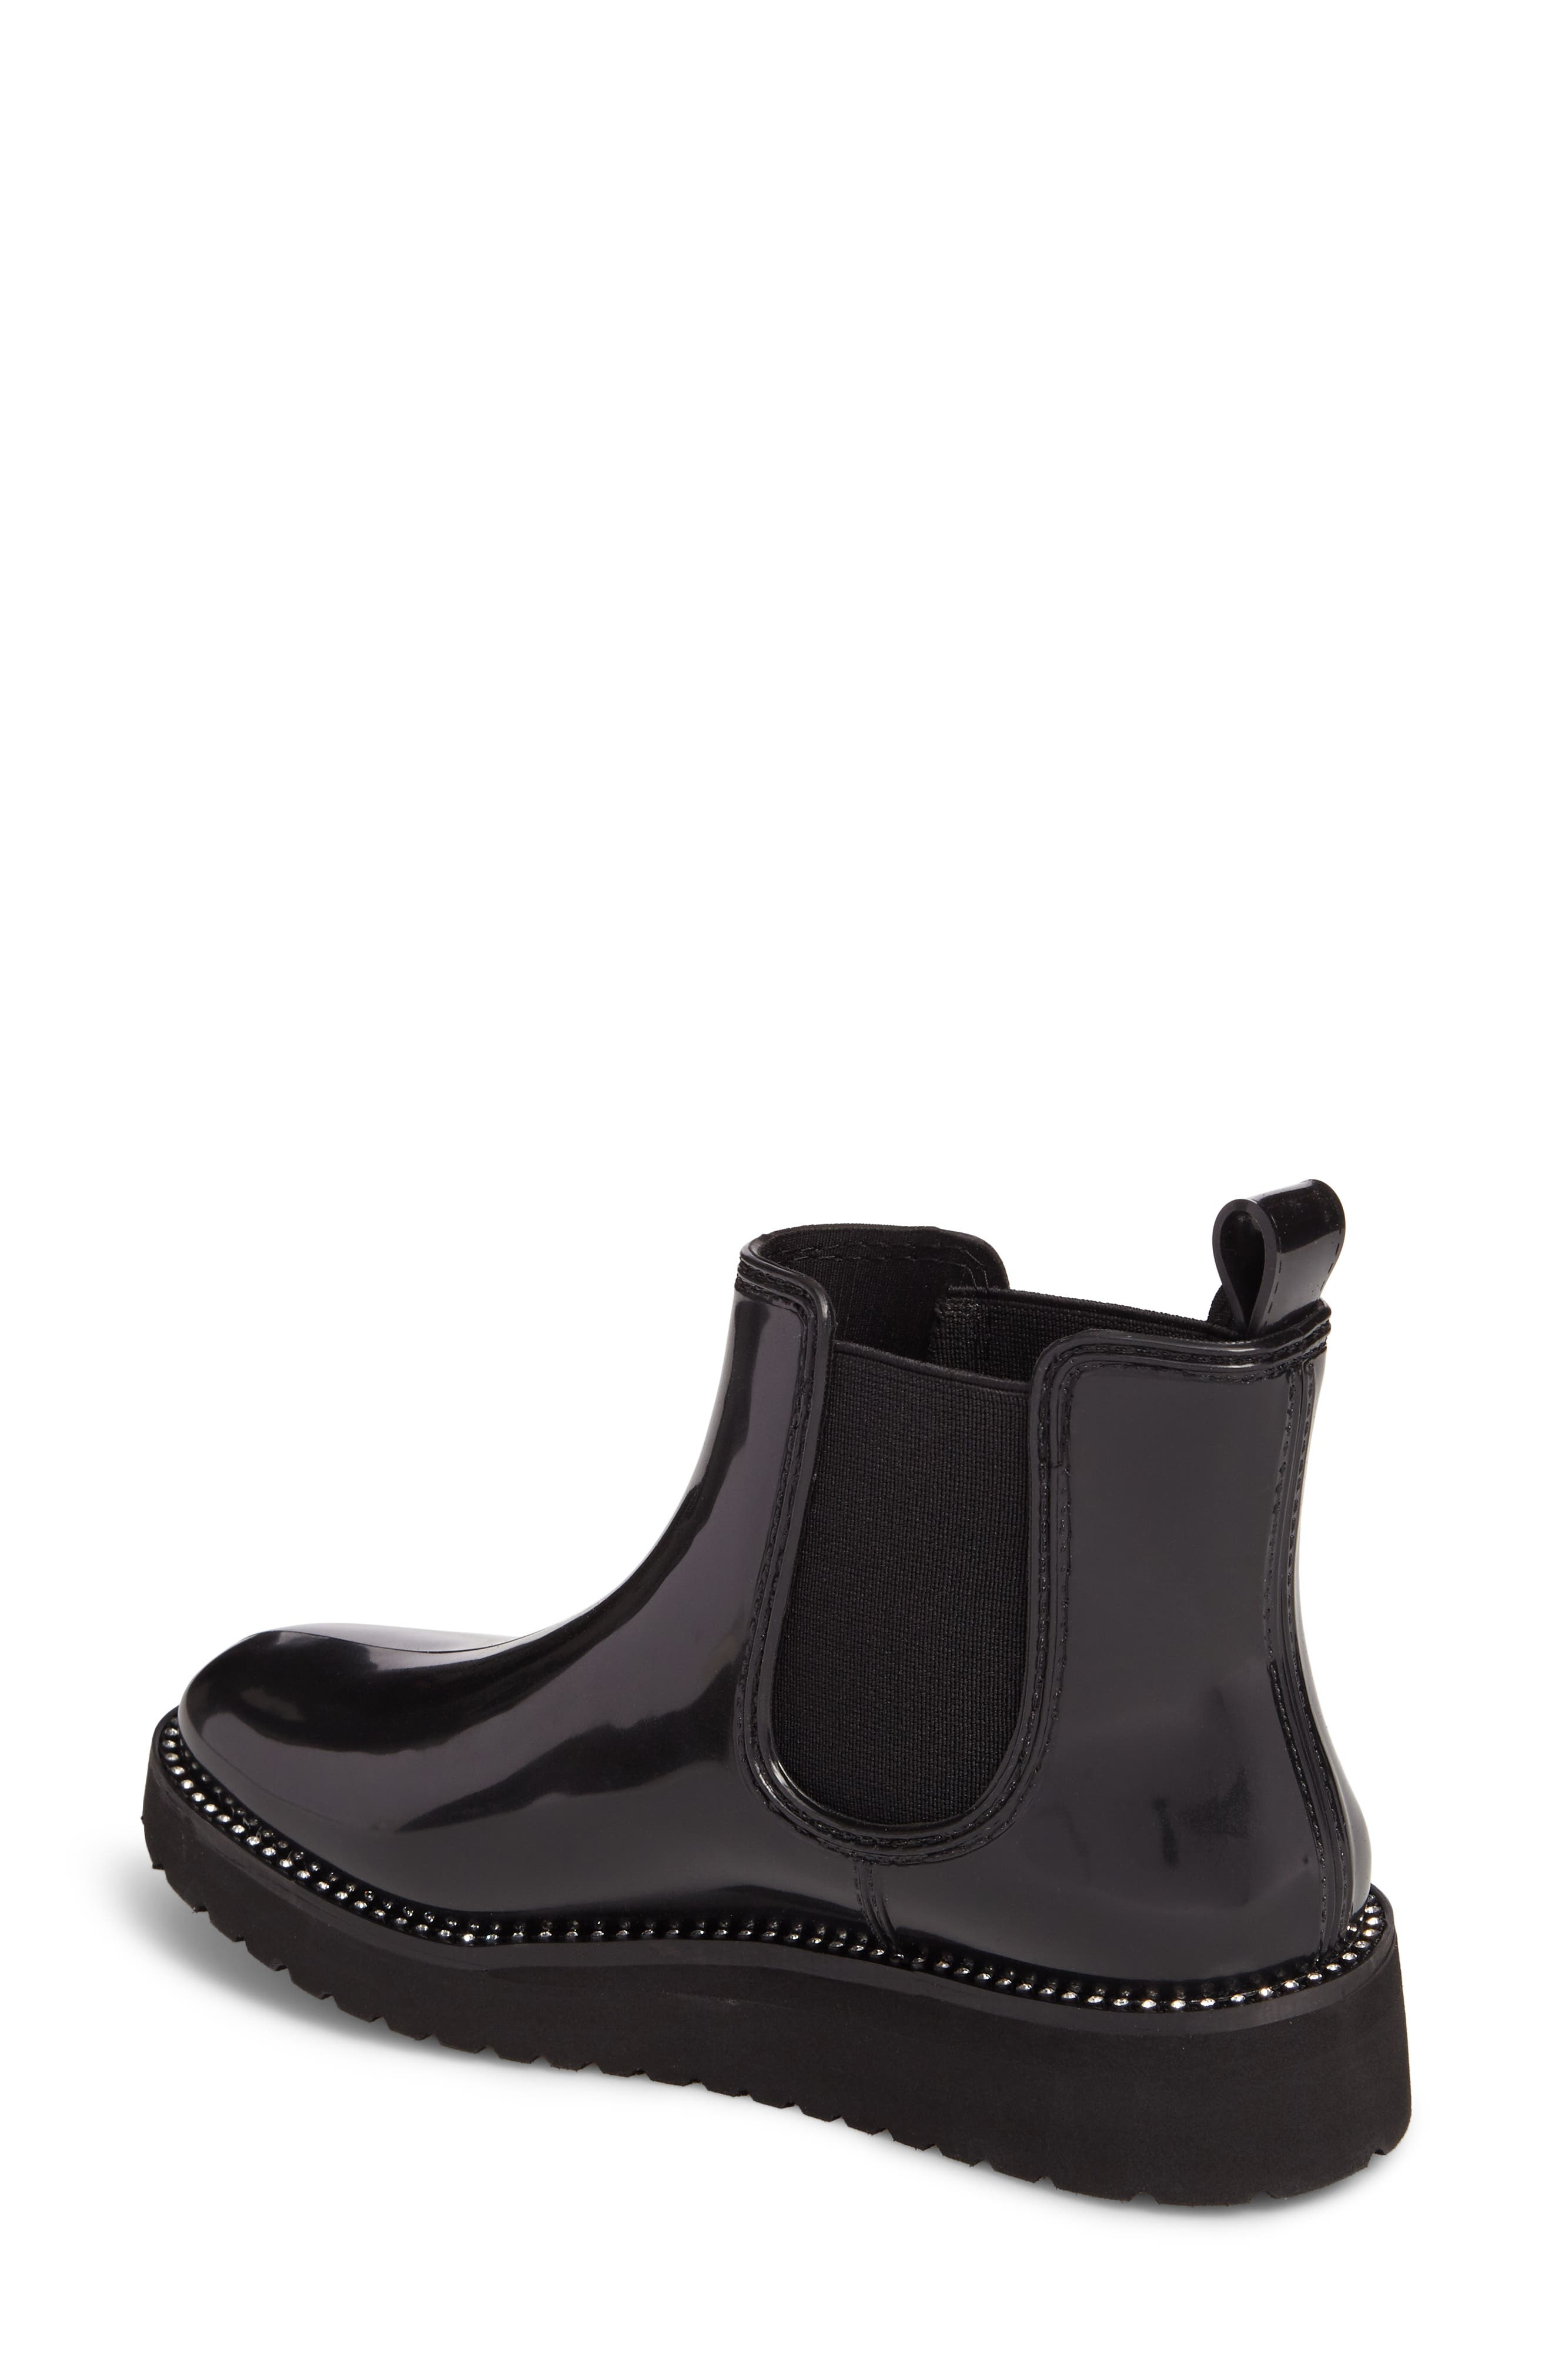 Kerry Waterproof Chelsea Boot,                             Alternate thumbnail 2, color,                             Black Diamond Welt